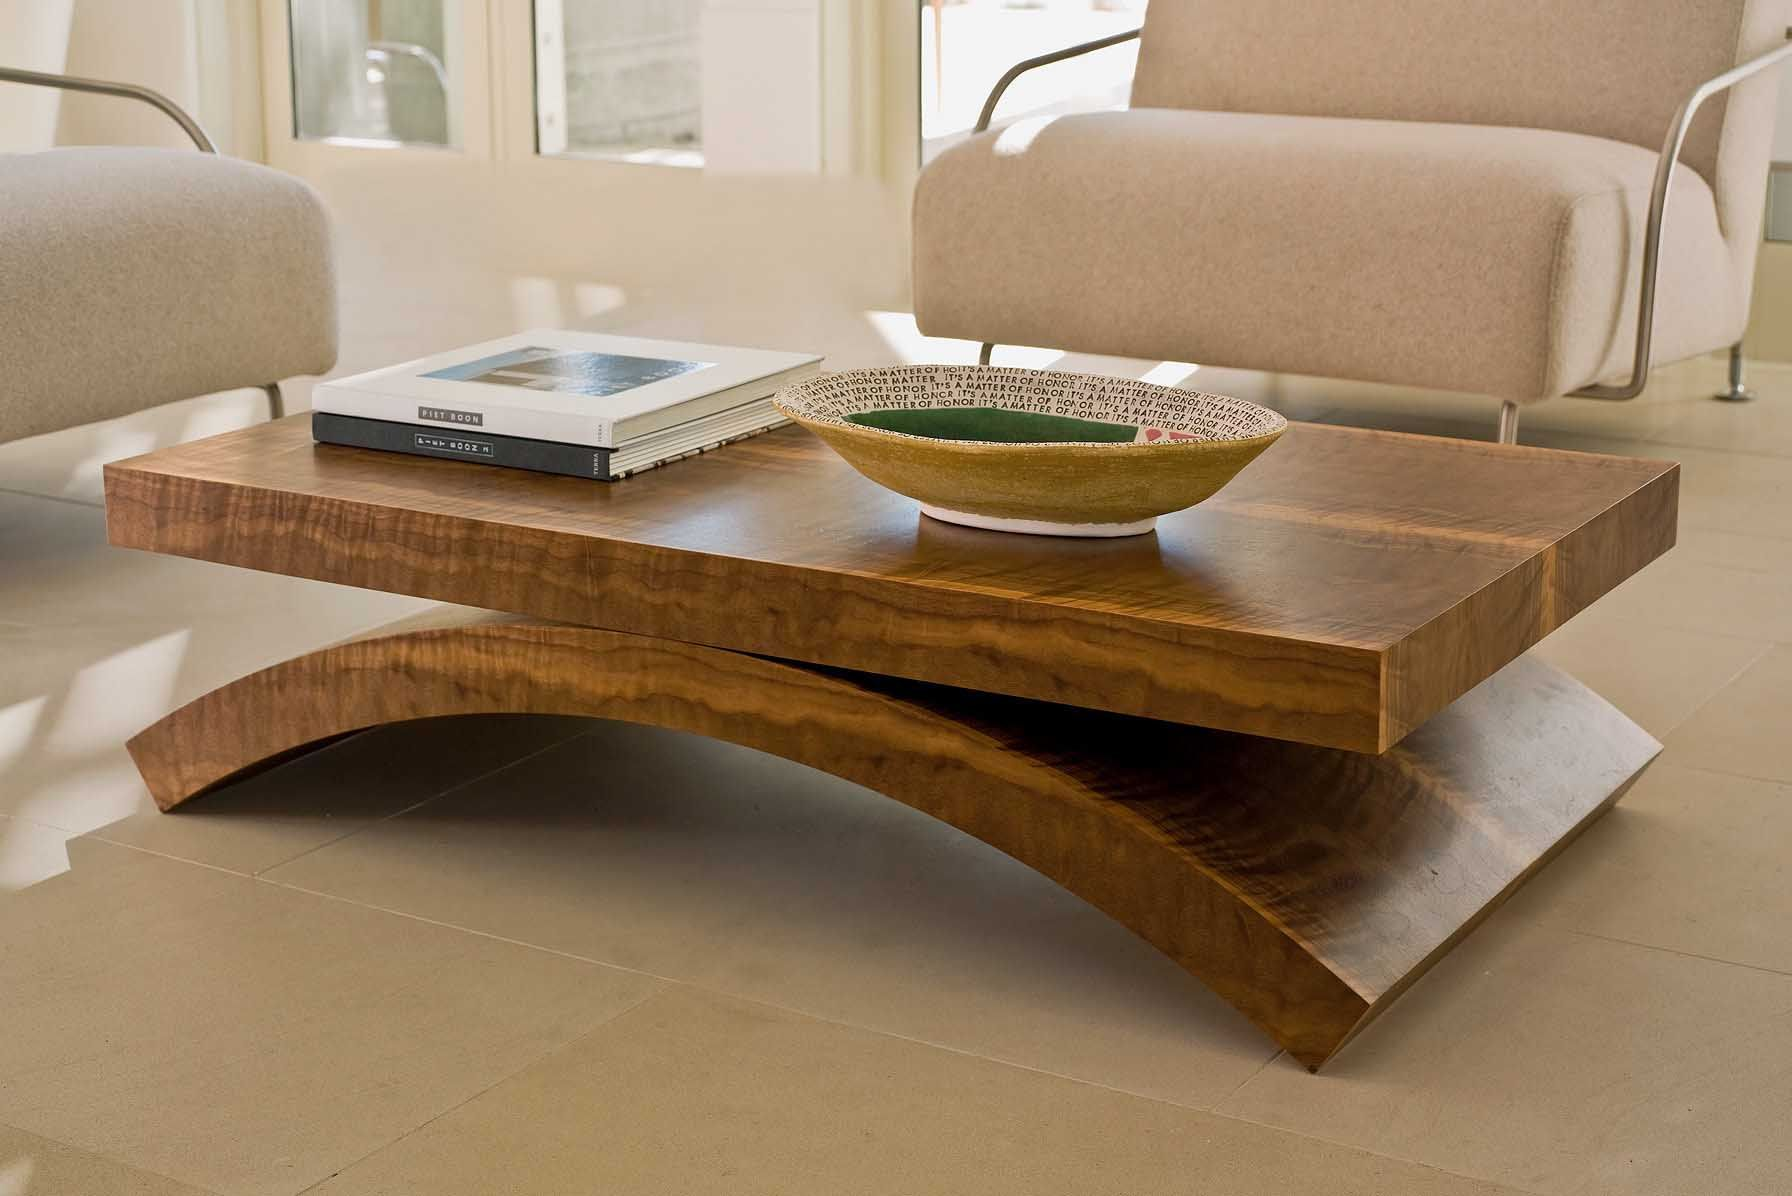 black walnut rectilinear coffee table enrico konig wood coffee table artful home. glass top delightful console table with storage in classic living